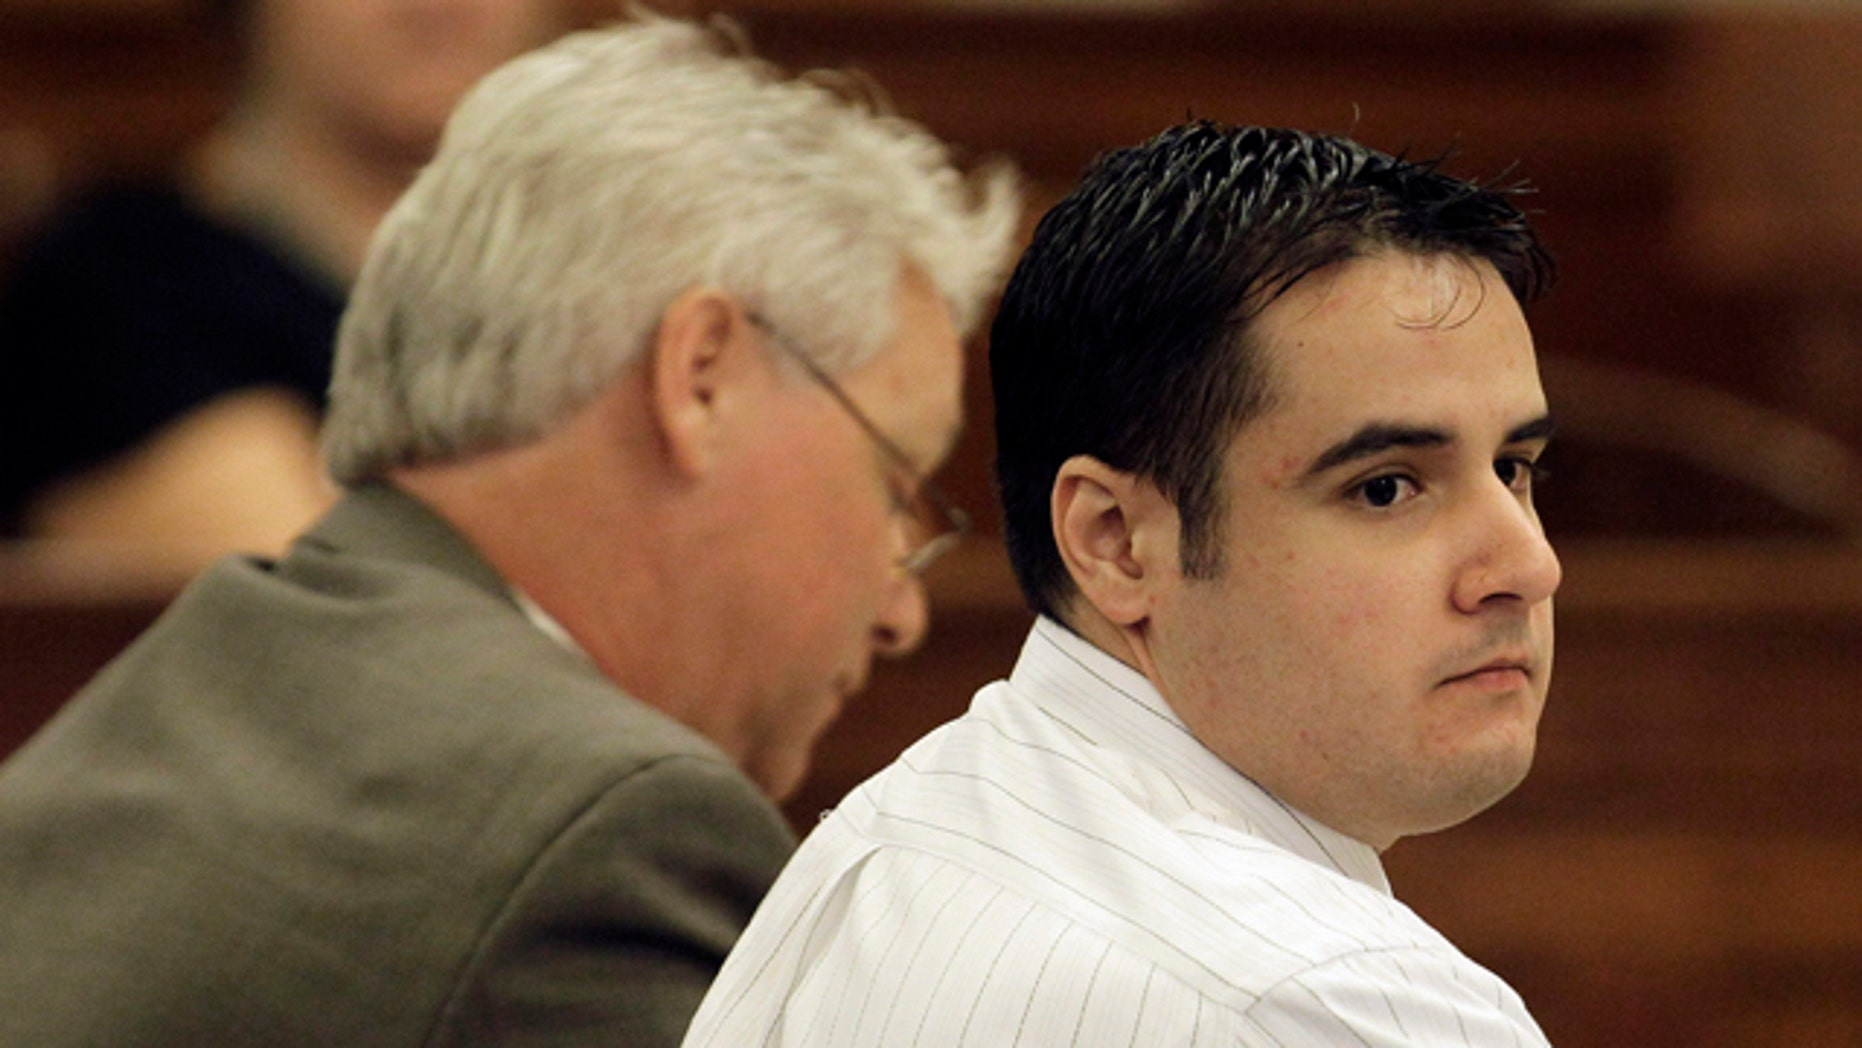 Aug. 13, 2010: Former Marine Cesar Laurean, right, listens during his trial at the Wayne County Courthouse in Goldsboro, N.C.